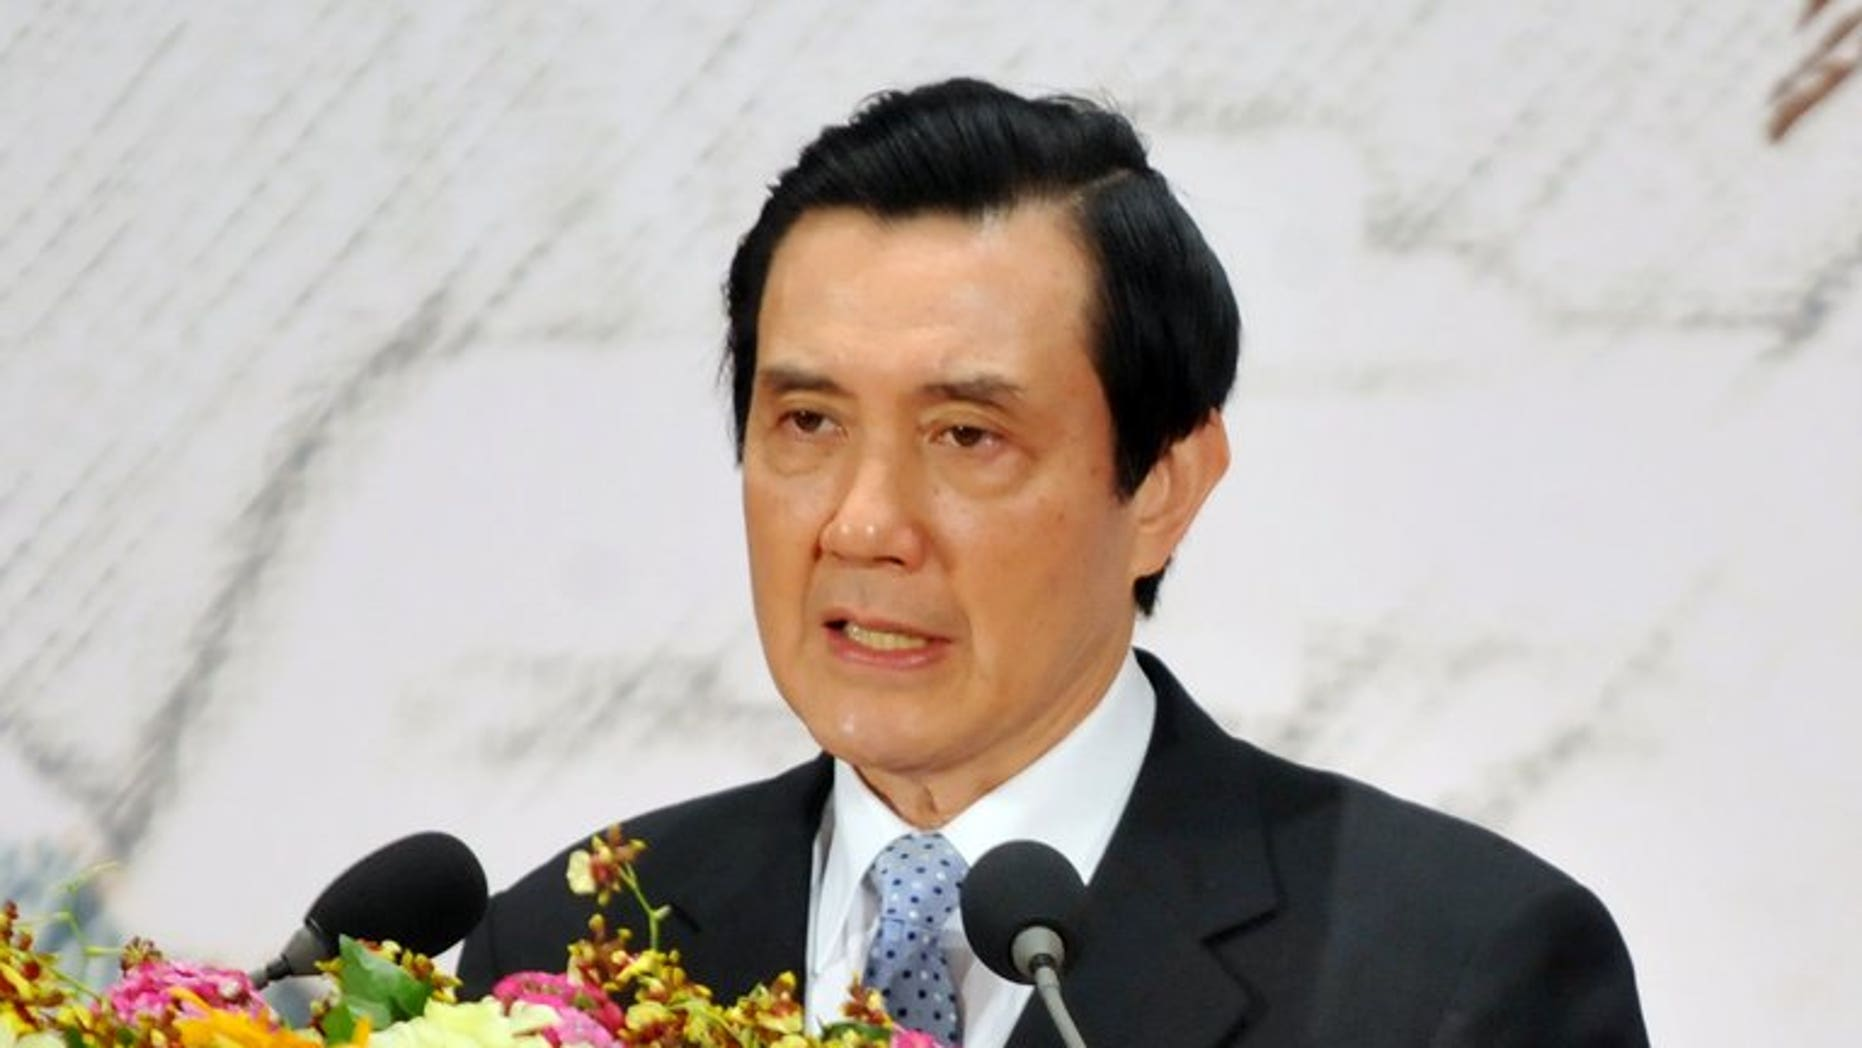 Taiwan's President Ma Ying-jeou speaks at the headquarters of the island's quasi-official Straits Exchange Foundation in Taipei on April 29, 2013. Ma defended a controversial trade pact with China following protests against the deal, saying it would benefit the island's economy.